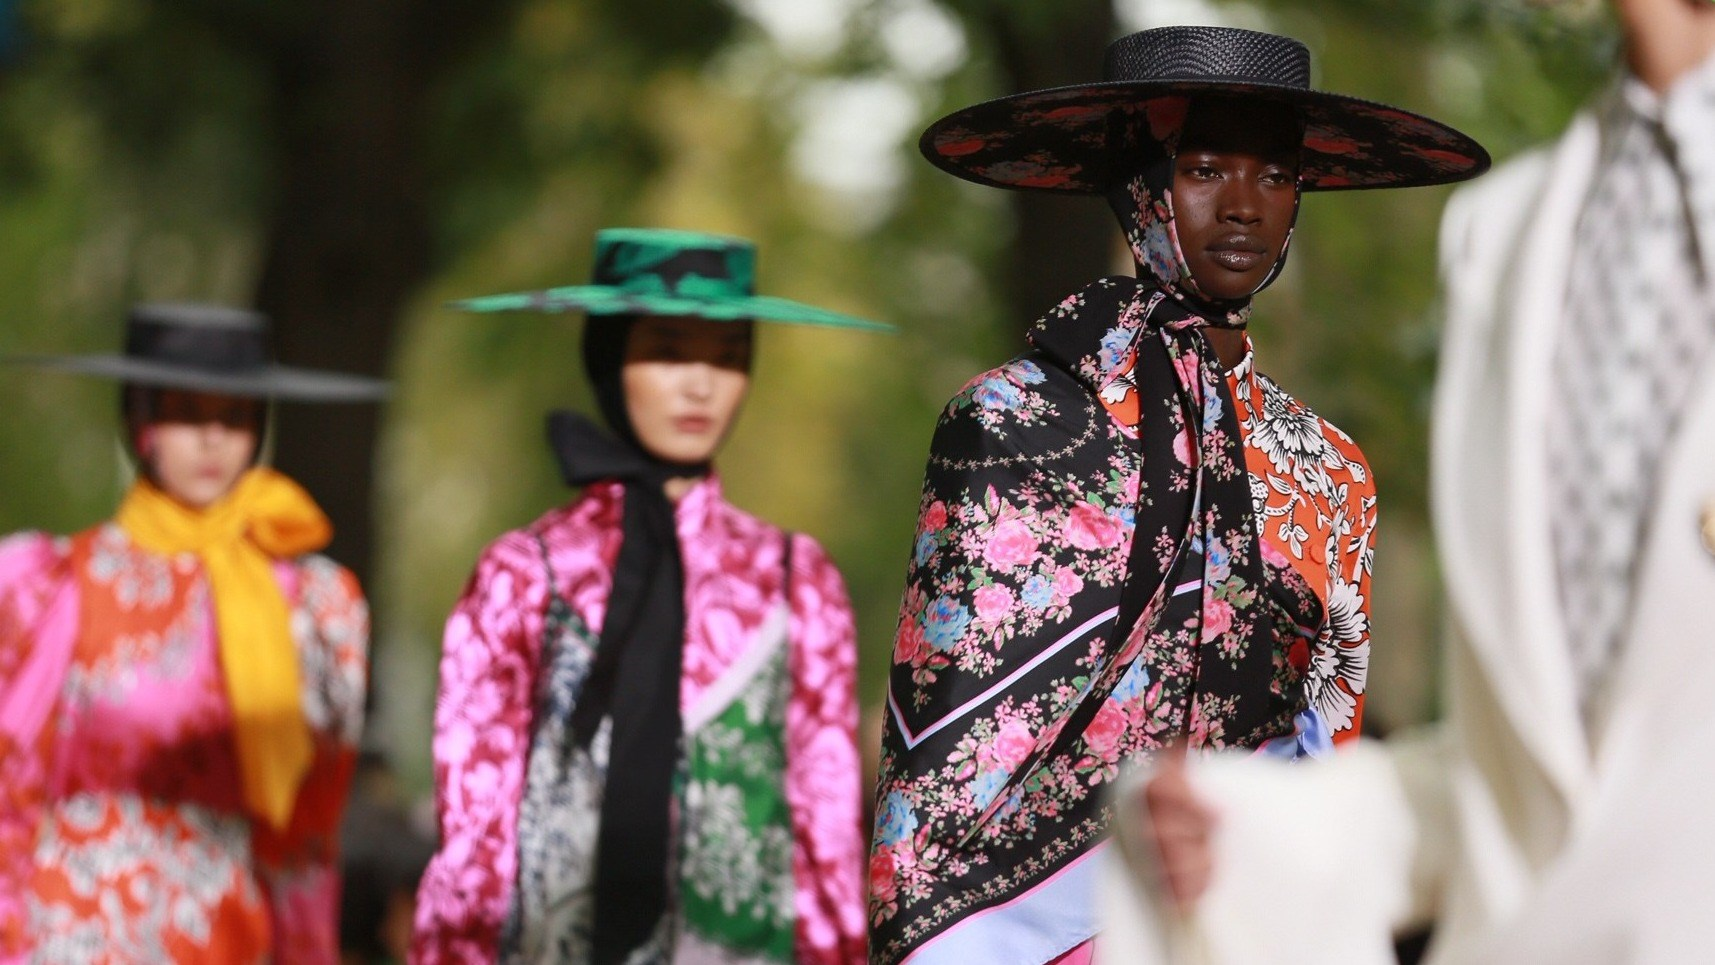 London fashion week febraury 2020 is a city wide celebration